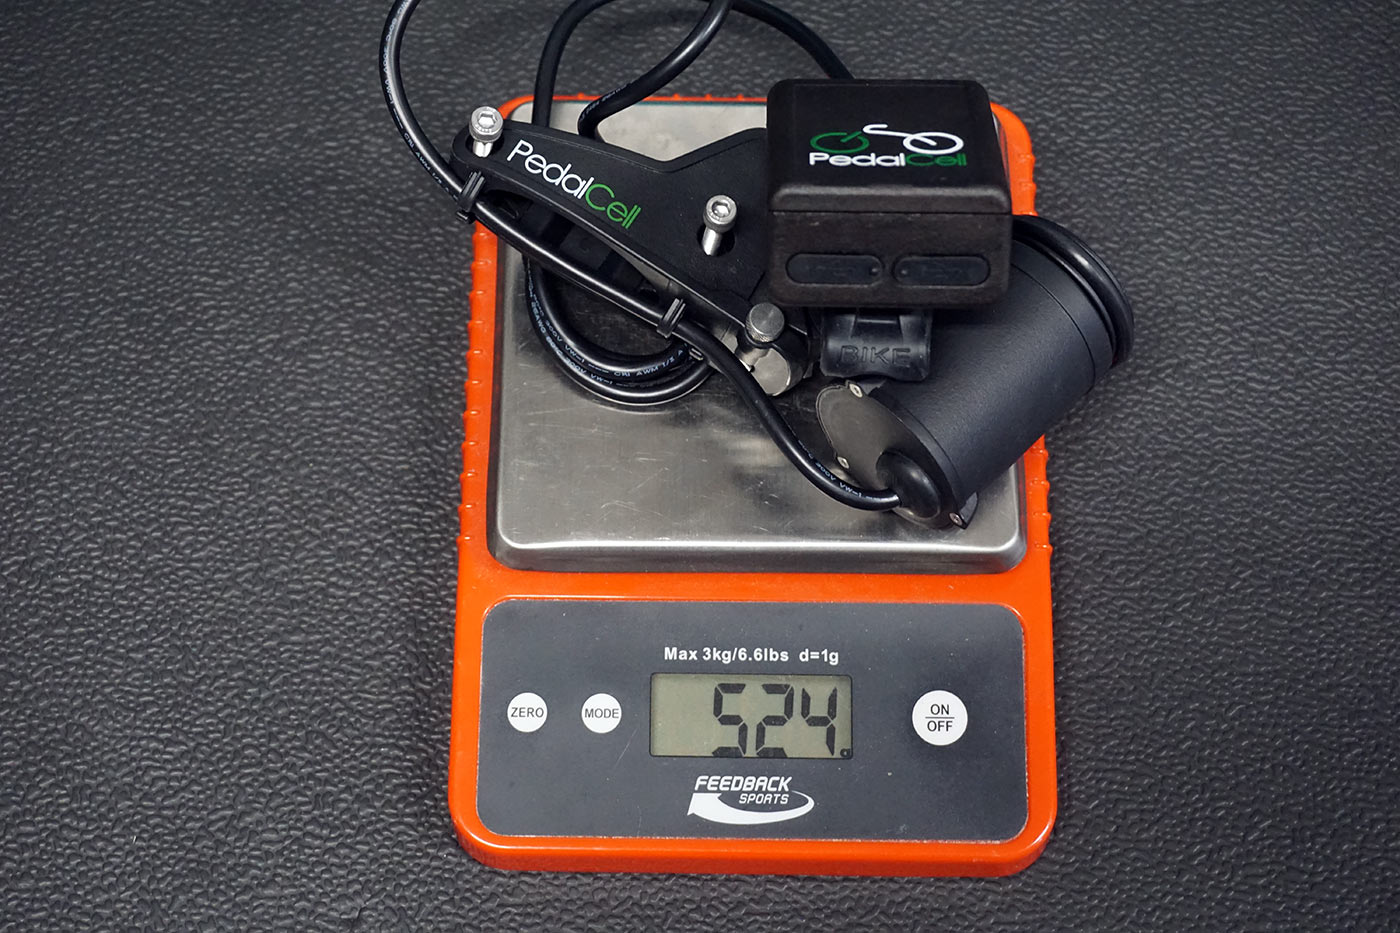 pedalcell dynamo actual weights